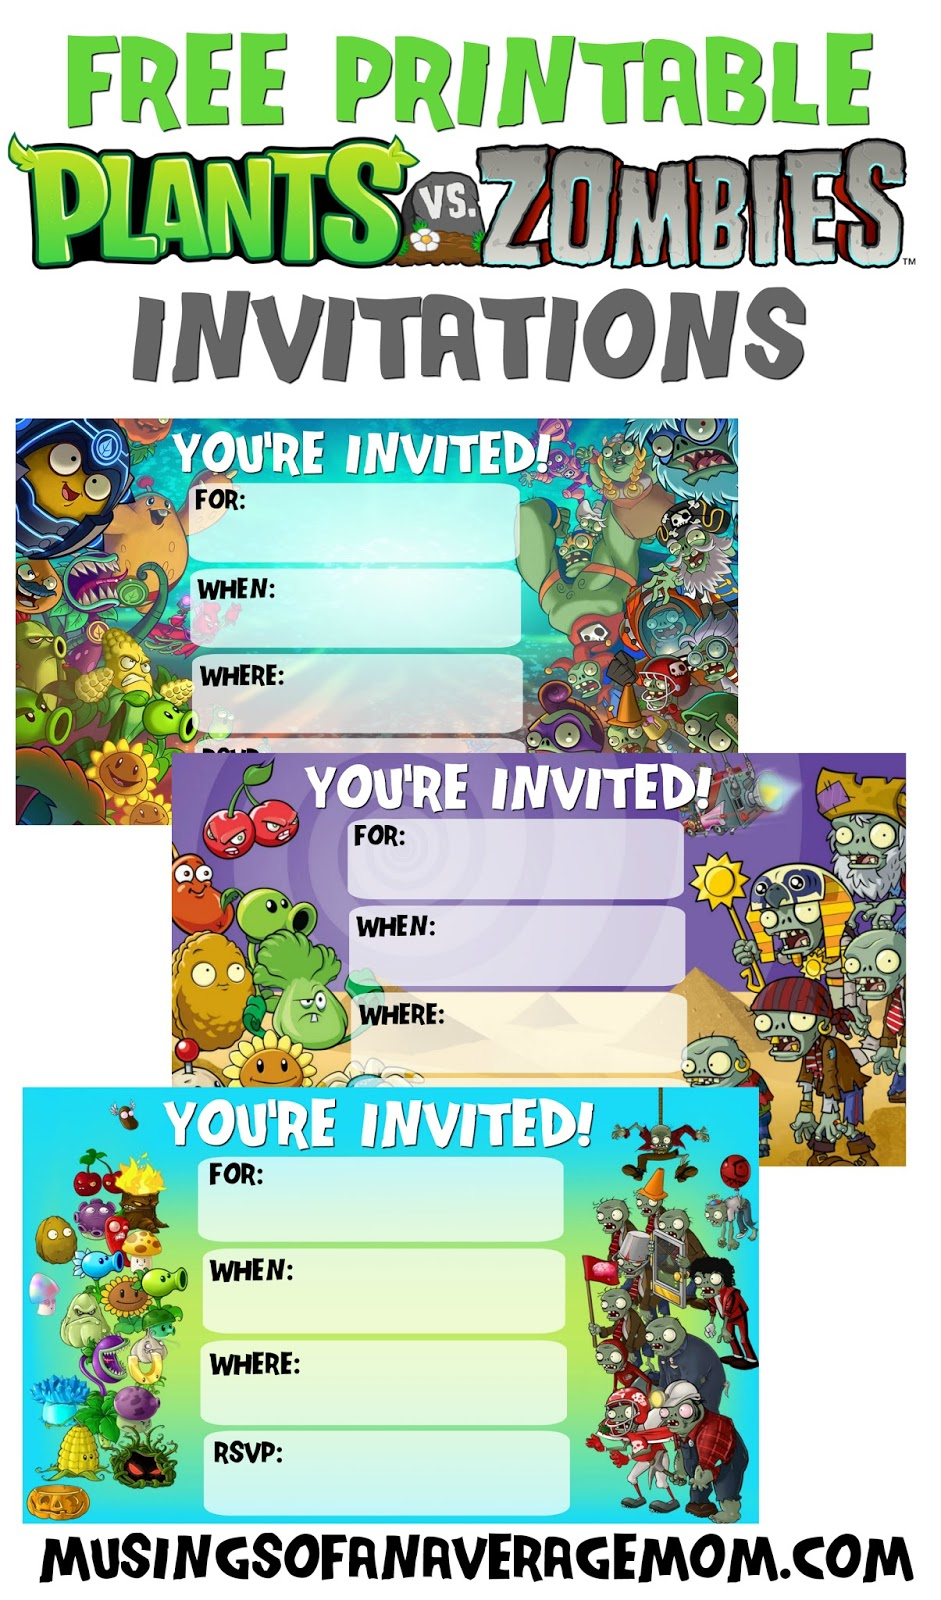 Musings Of An Average Mom Plants Vs Zombies Invitations